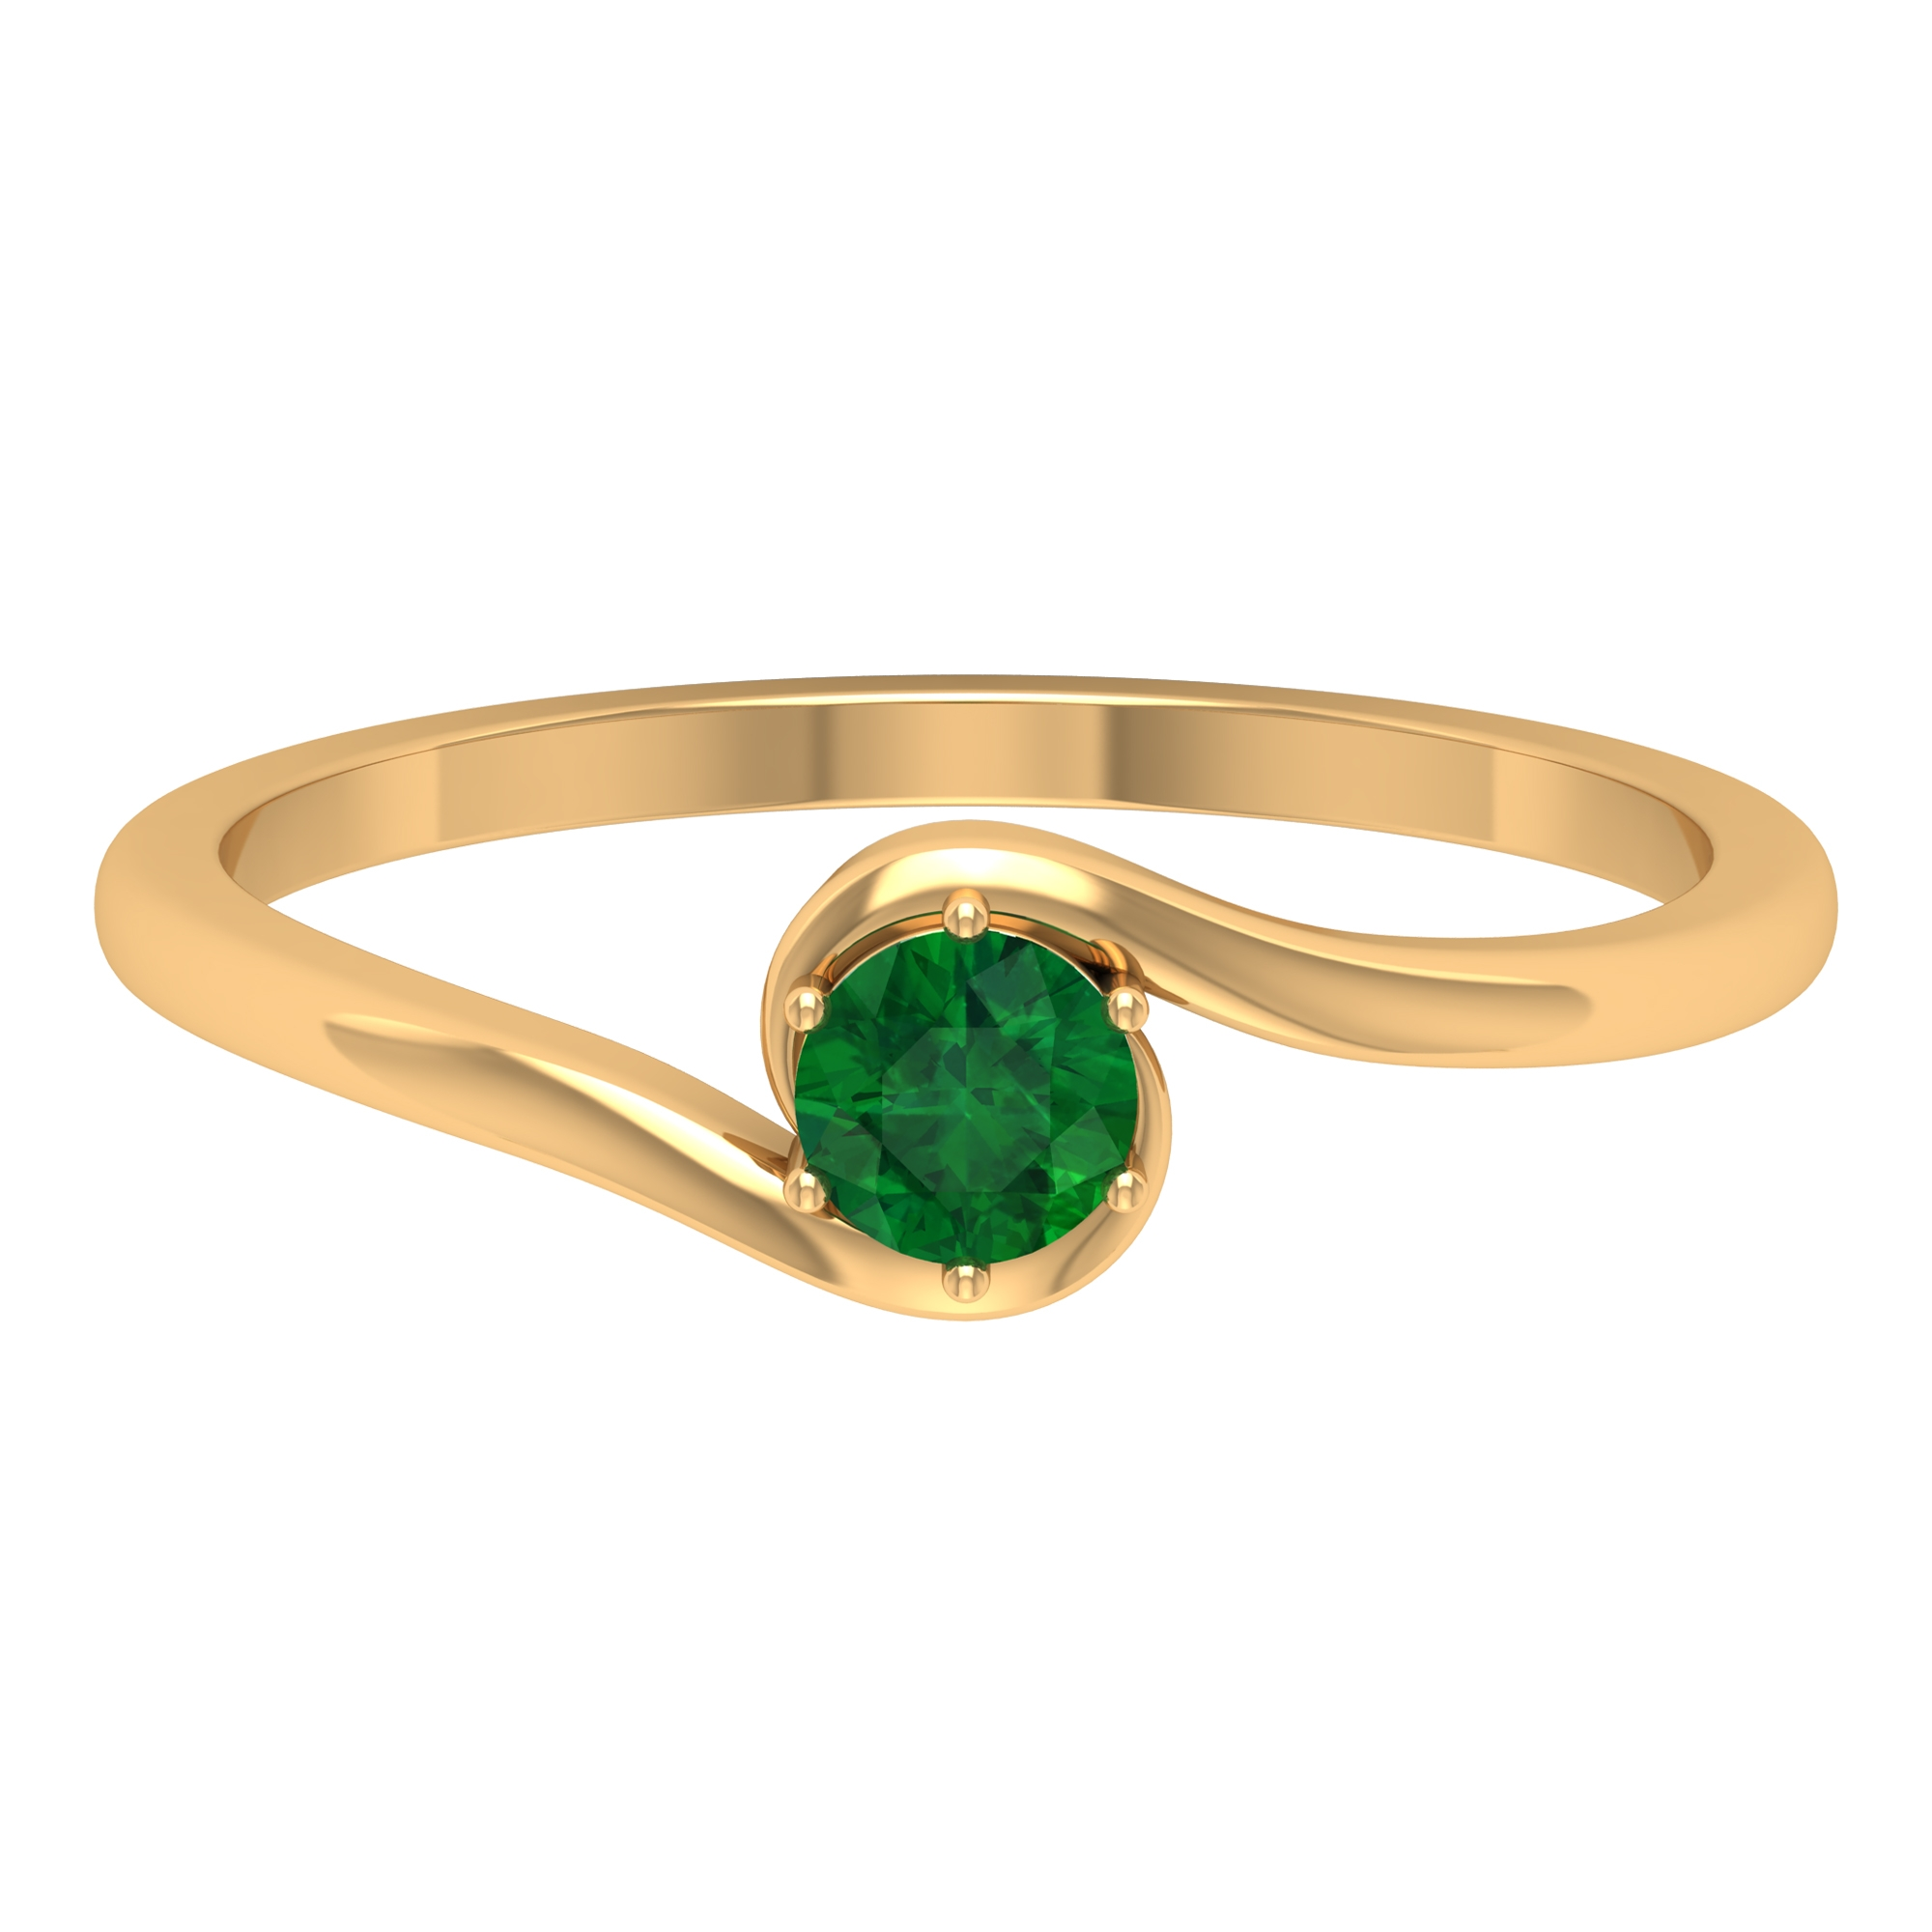 May Birthstone 4 MM Emerald Solitaire Ring in 6 Prong Setting with Bypass Shank